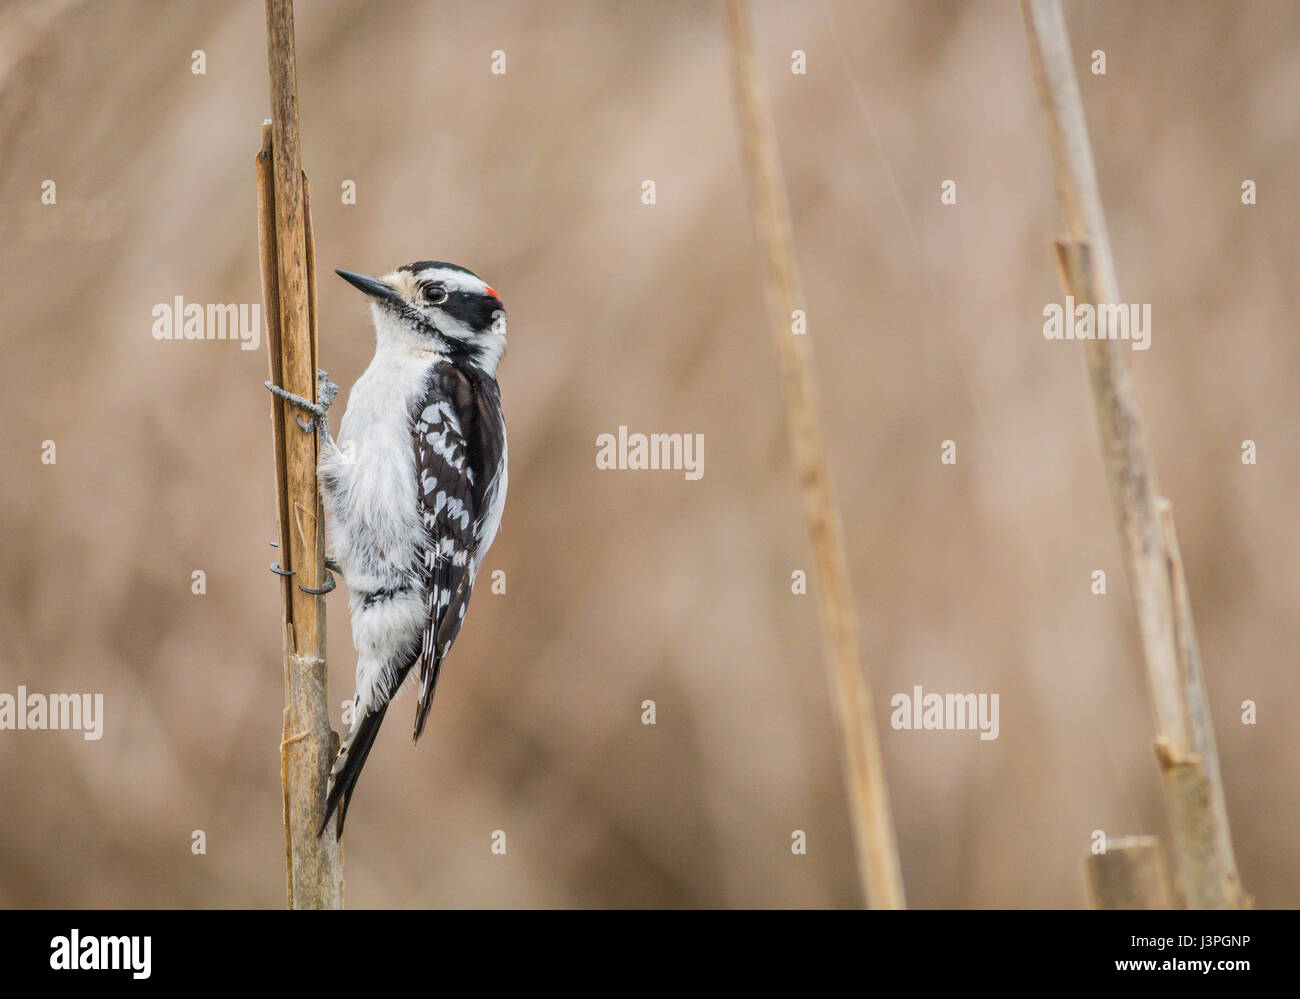 Downy Woodpecker (Picoides Pubescens) stands out among three swamp reeds - Stock Image